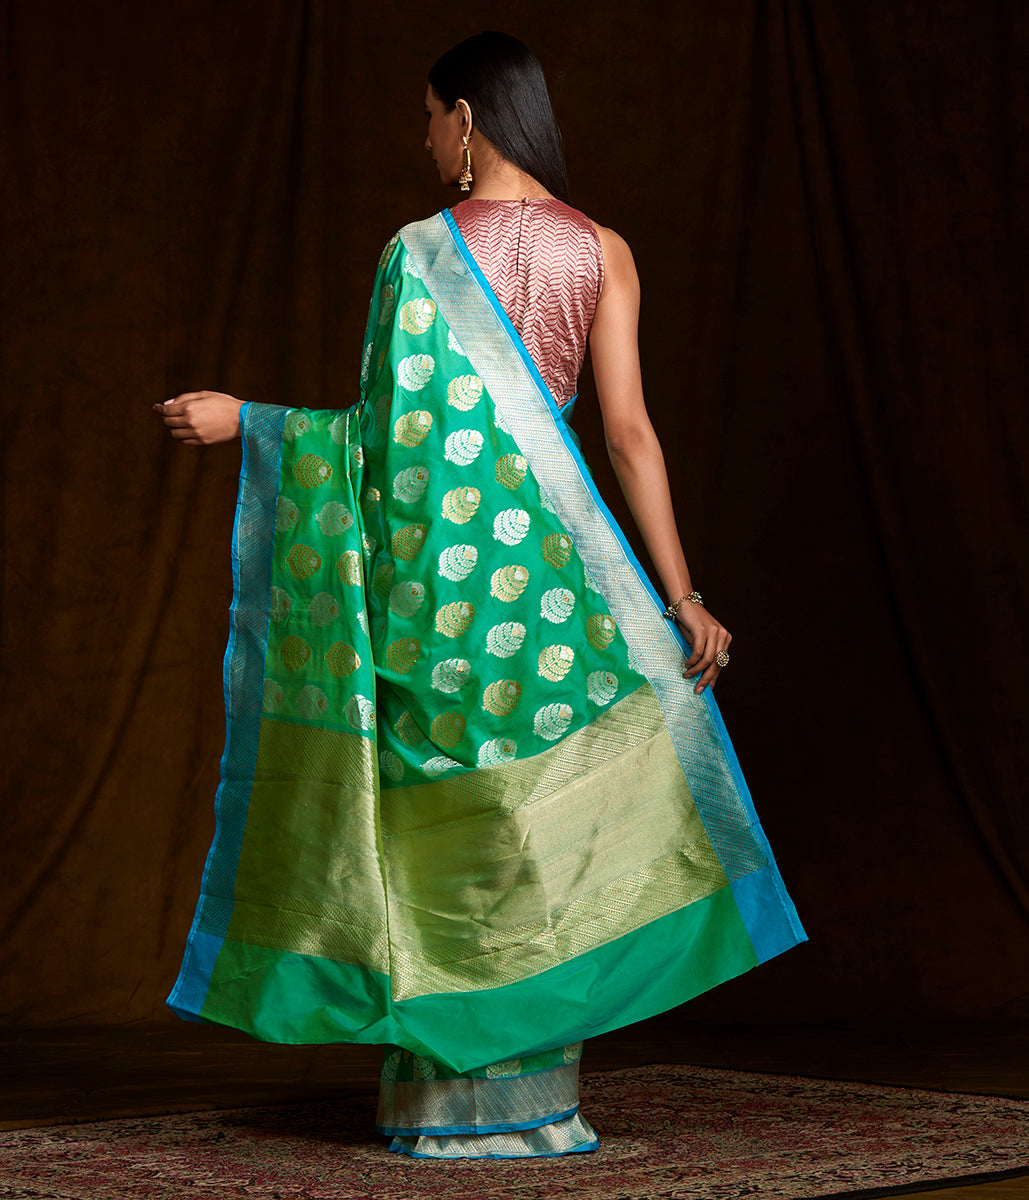 Handwoven Blue and Green Banarasi with Leaf Motifs